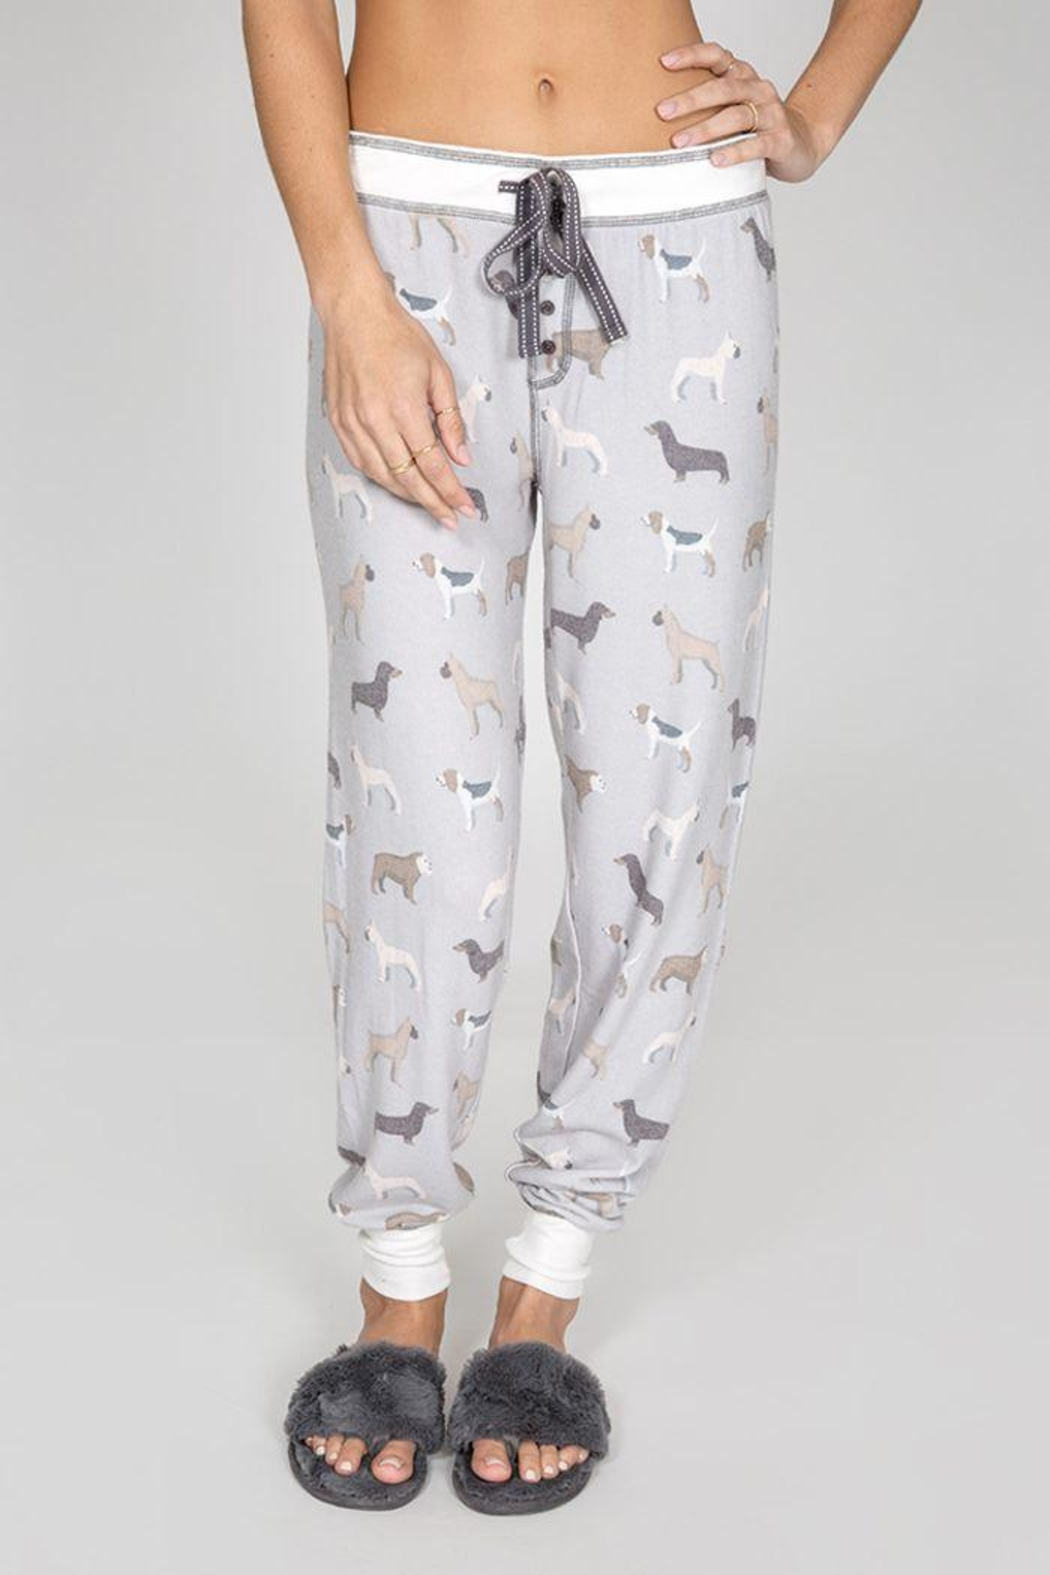 8128655ab PJ Salvage Brushed Dog-Print Bottoms from California by The Dressing ...